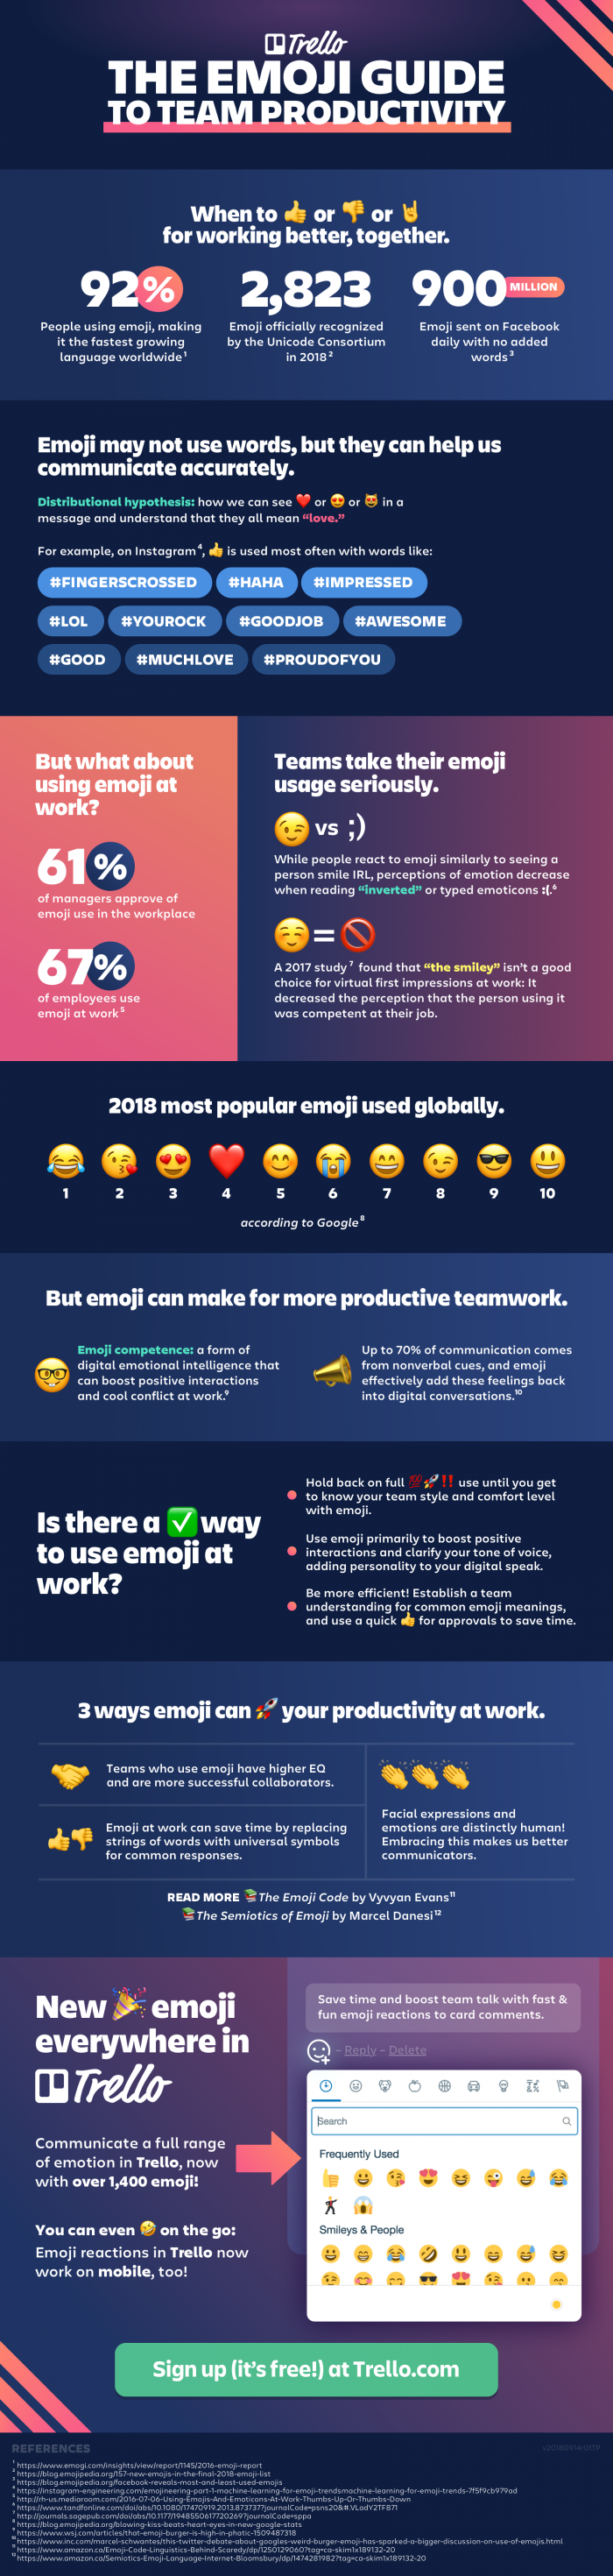 The Emoji Guide To Team Productivity #infographic